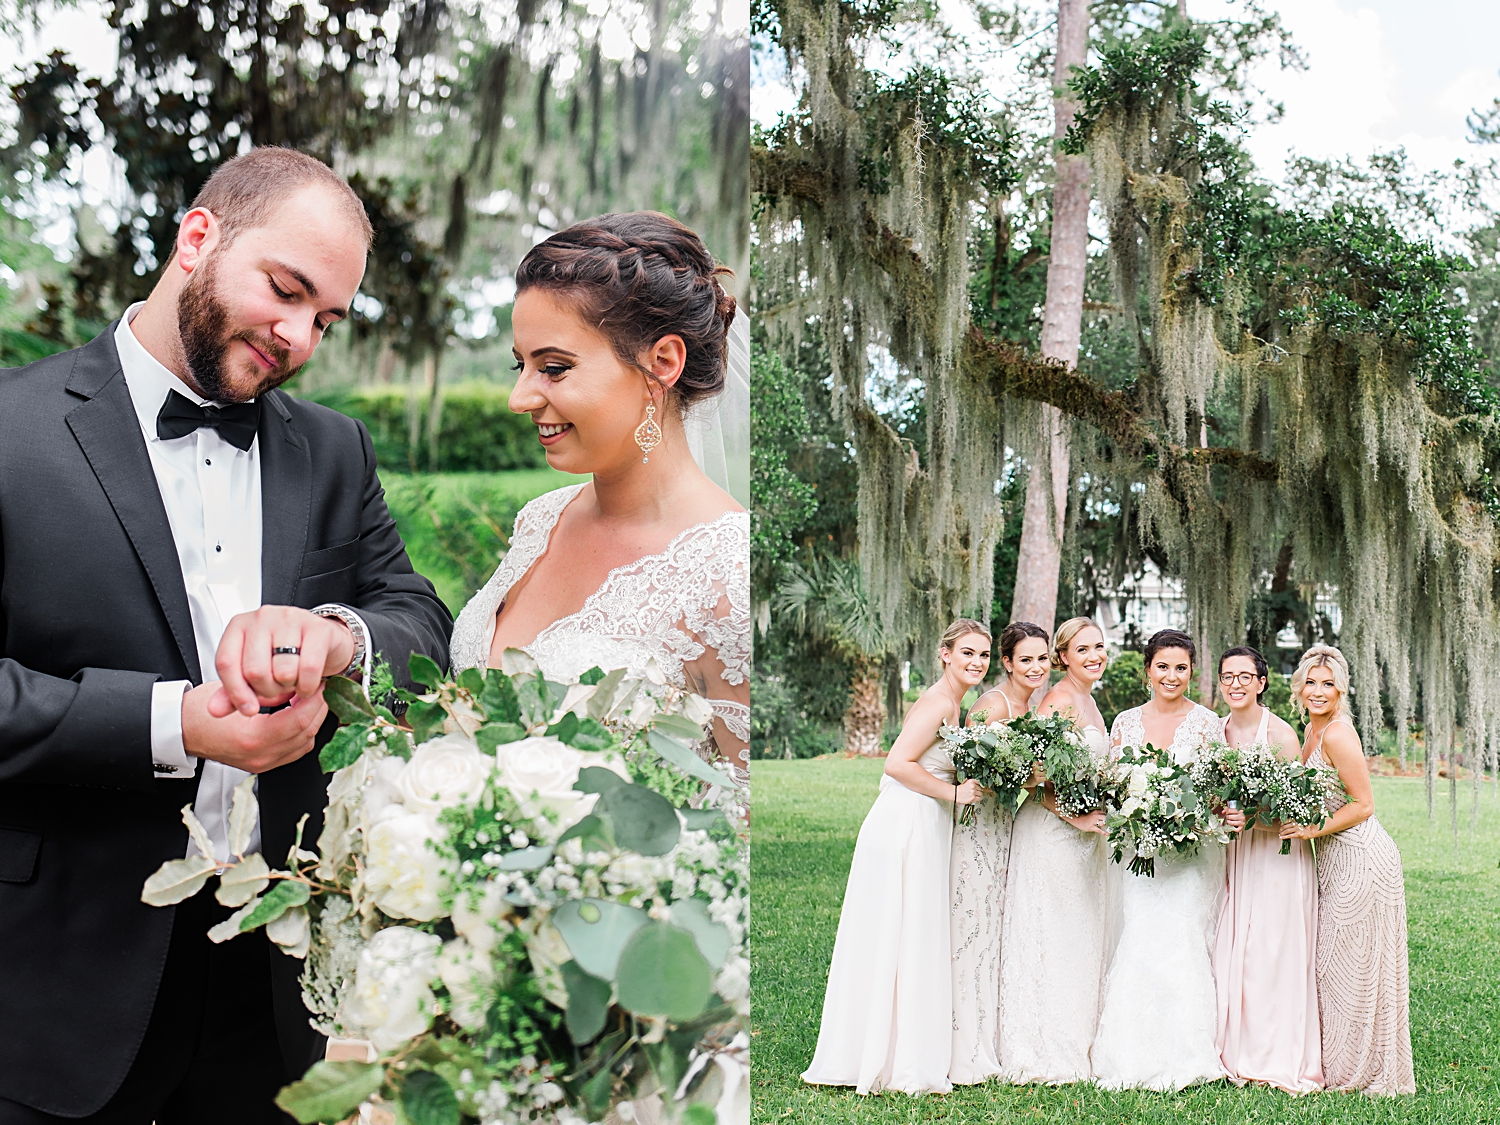 bluffton-sc-wedding-photographer-rose-hill-manison-jb-marie-photography